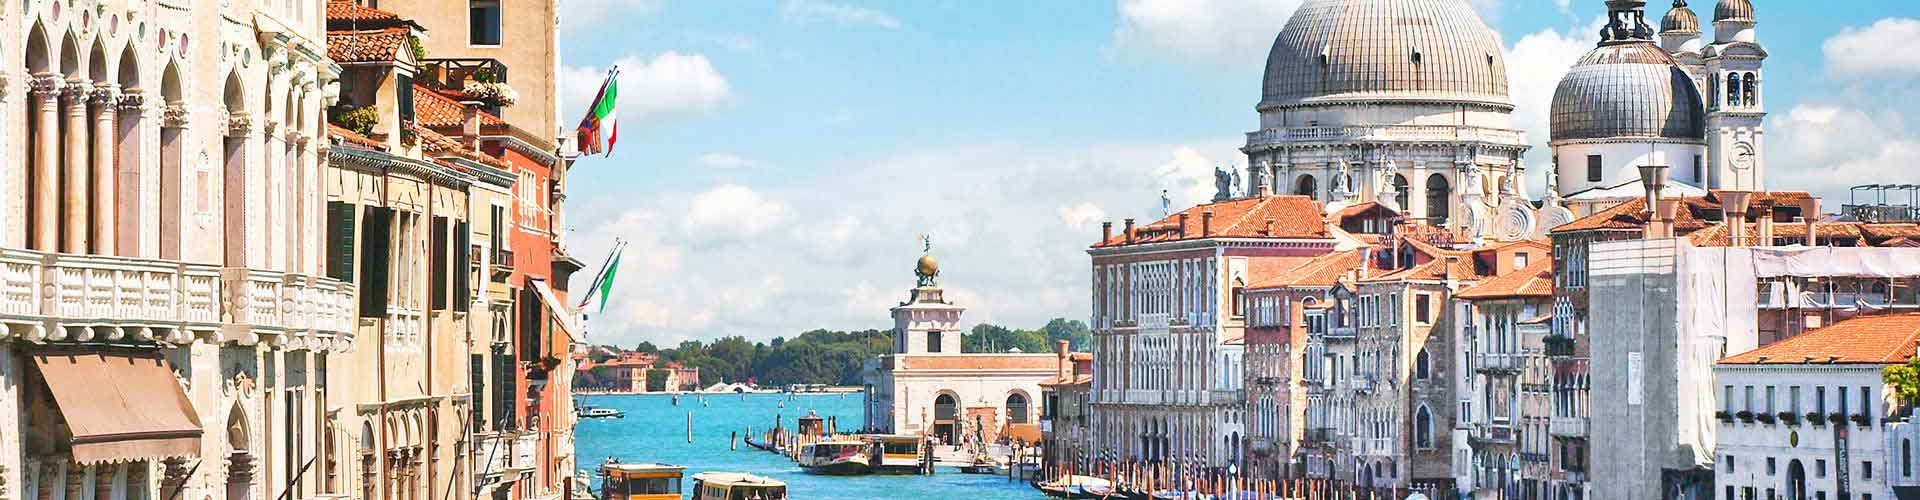 Veneza – On-campus college university dorms and residence halls in Veneza. Safe rivate rooms, heap dorms,  maps of Itália, photos and reviews for each On-campus college and university dorm and hall of residence in Veneza.